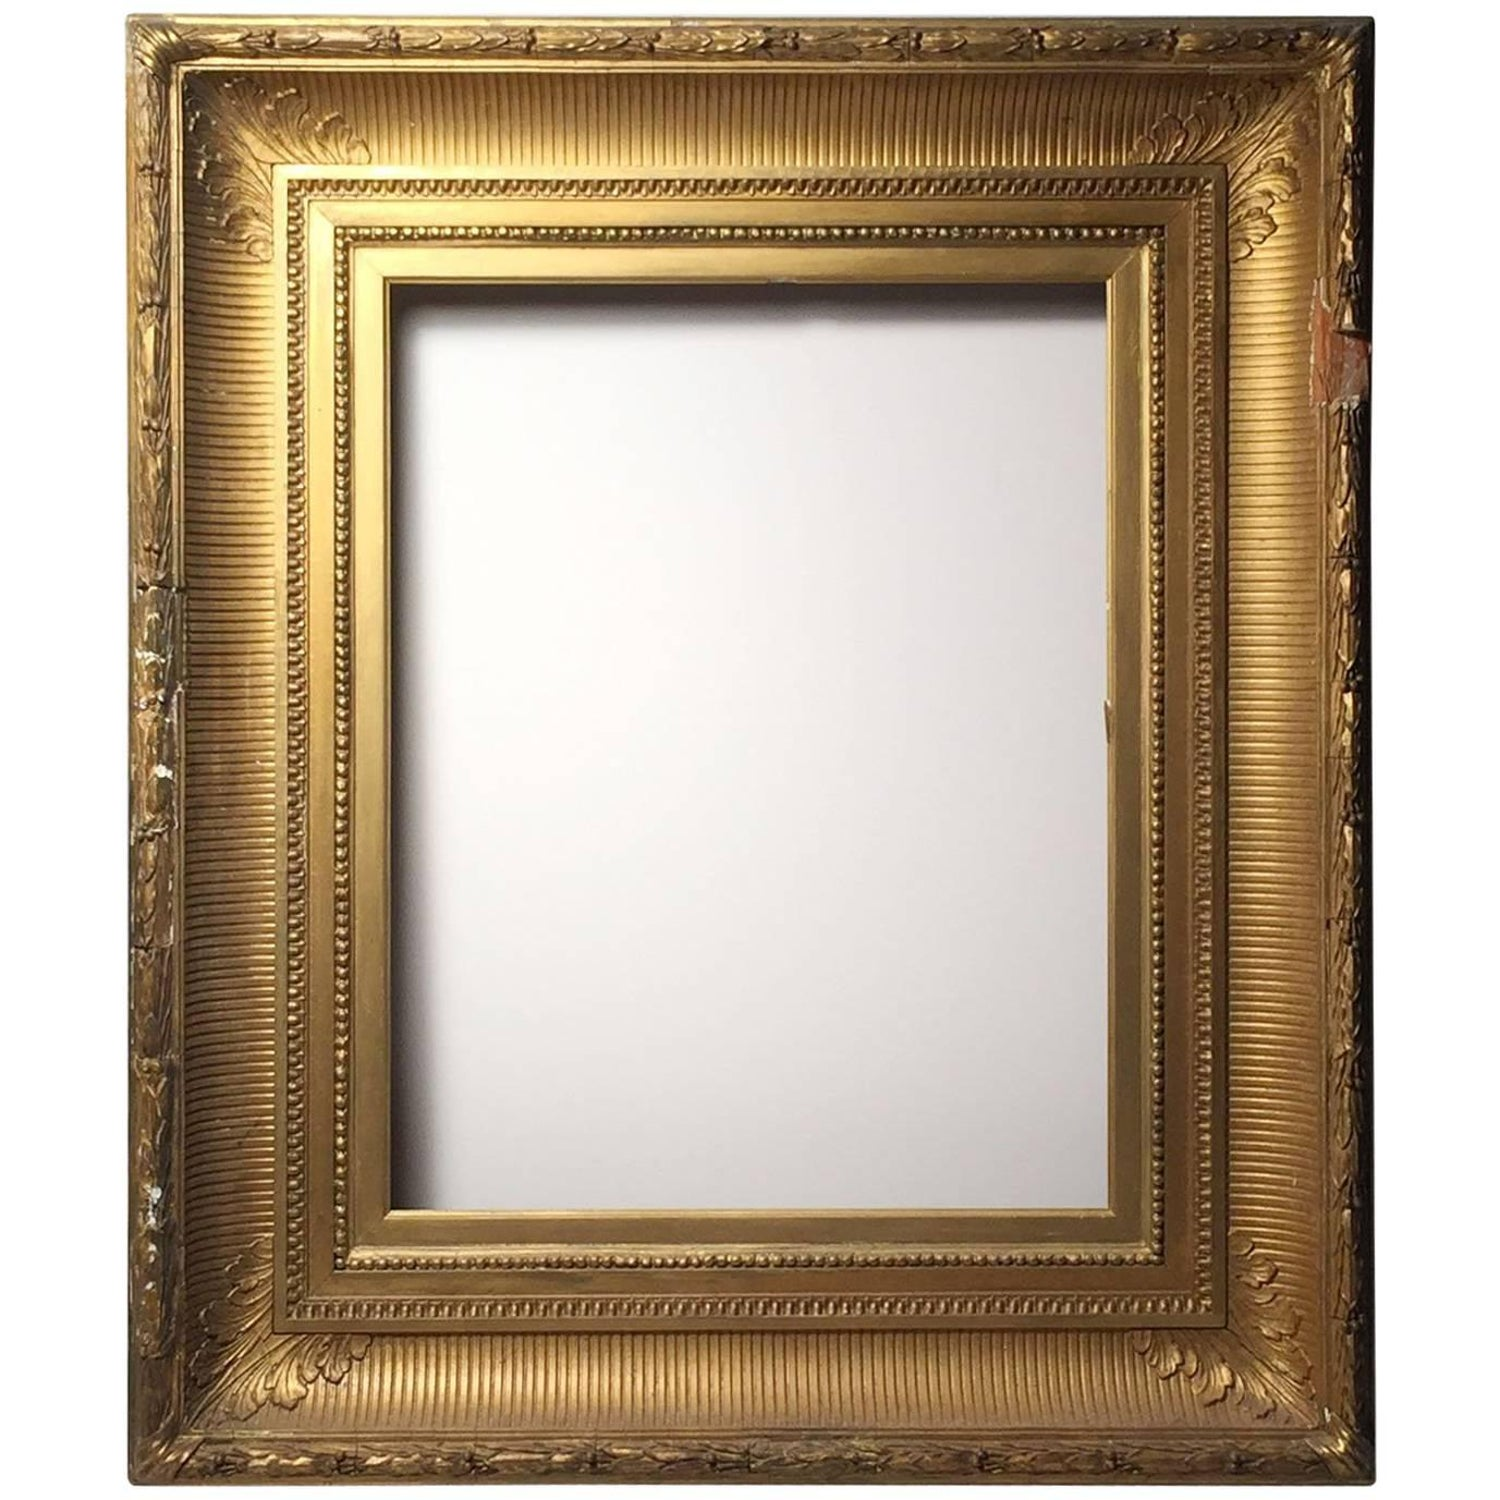 Degas no 5 modern wall mirror gilded in 23 karat yellow gold american hudson river school gilded wood frame mirror amipublicfo Images